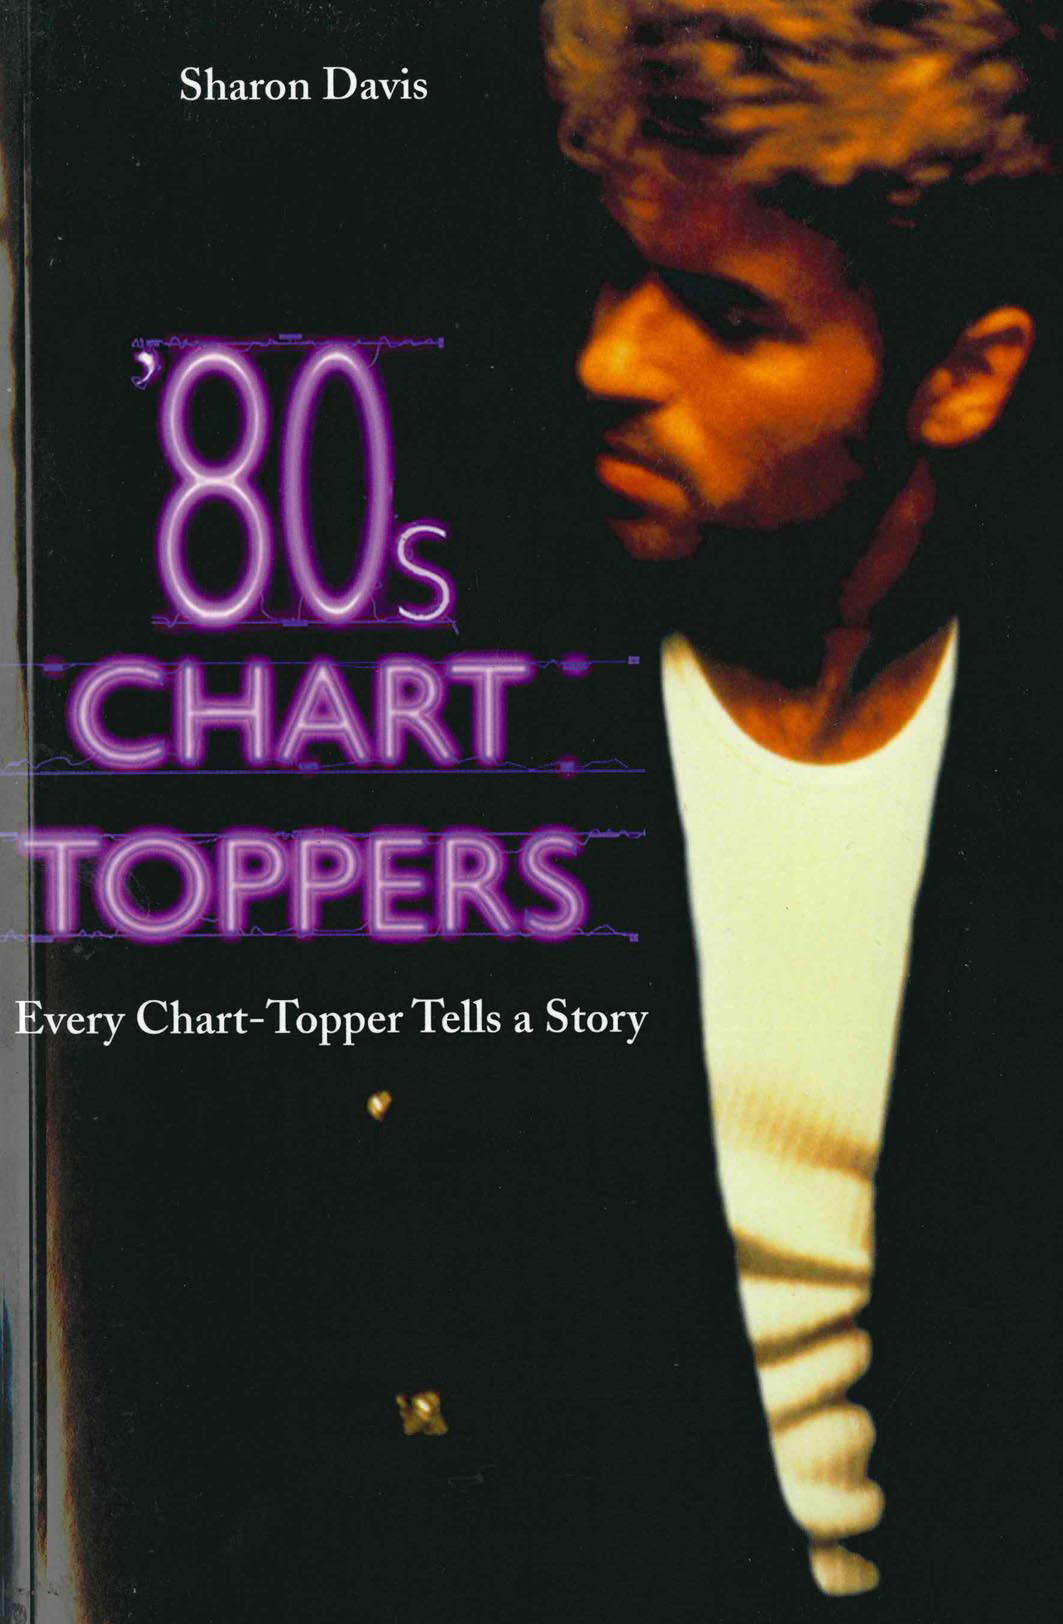 80s Chart-Toppers Every Chart-Topper Tells a Story